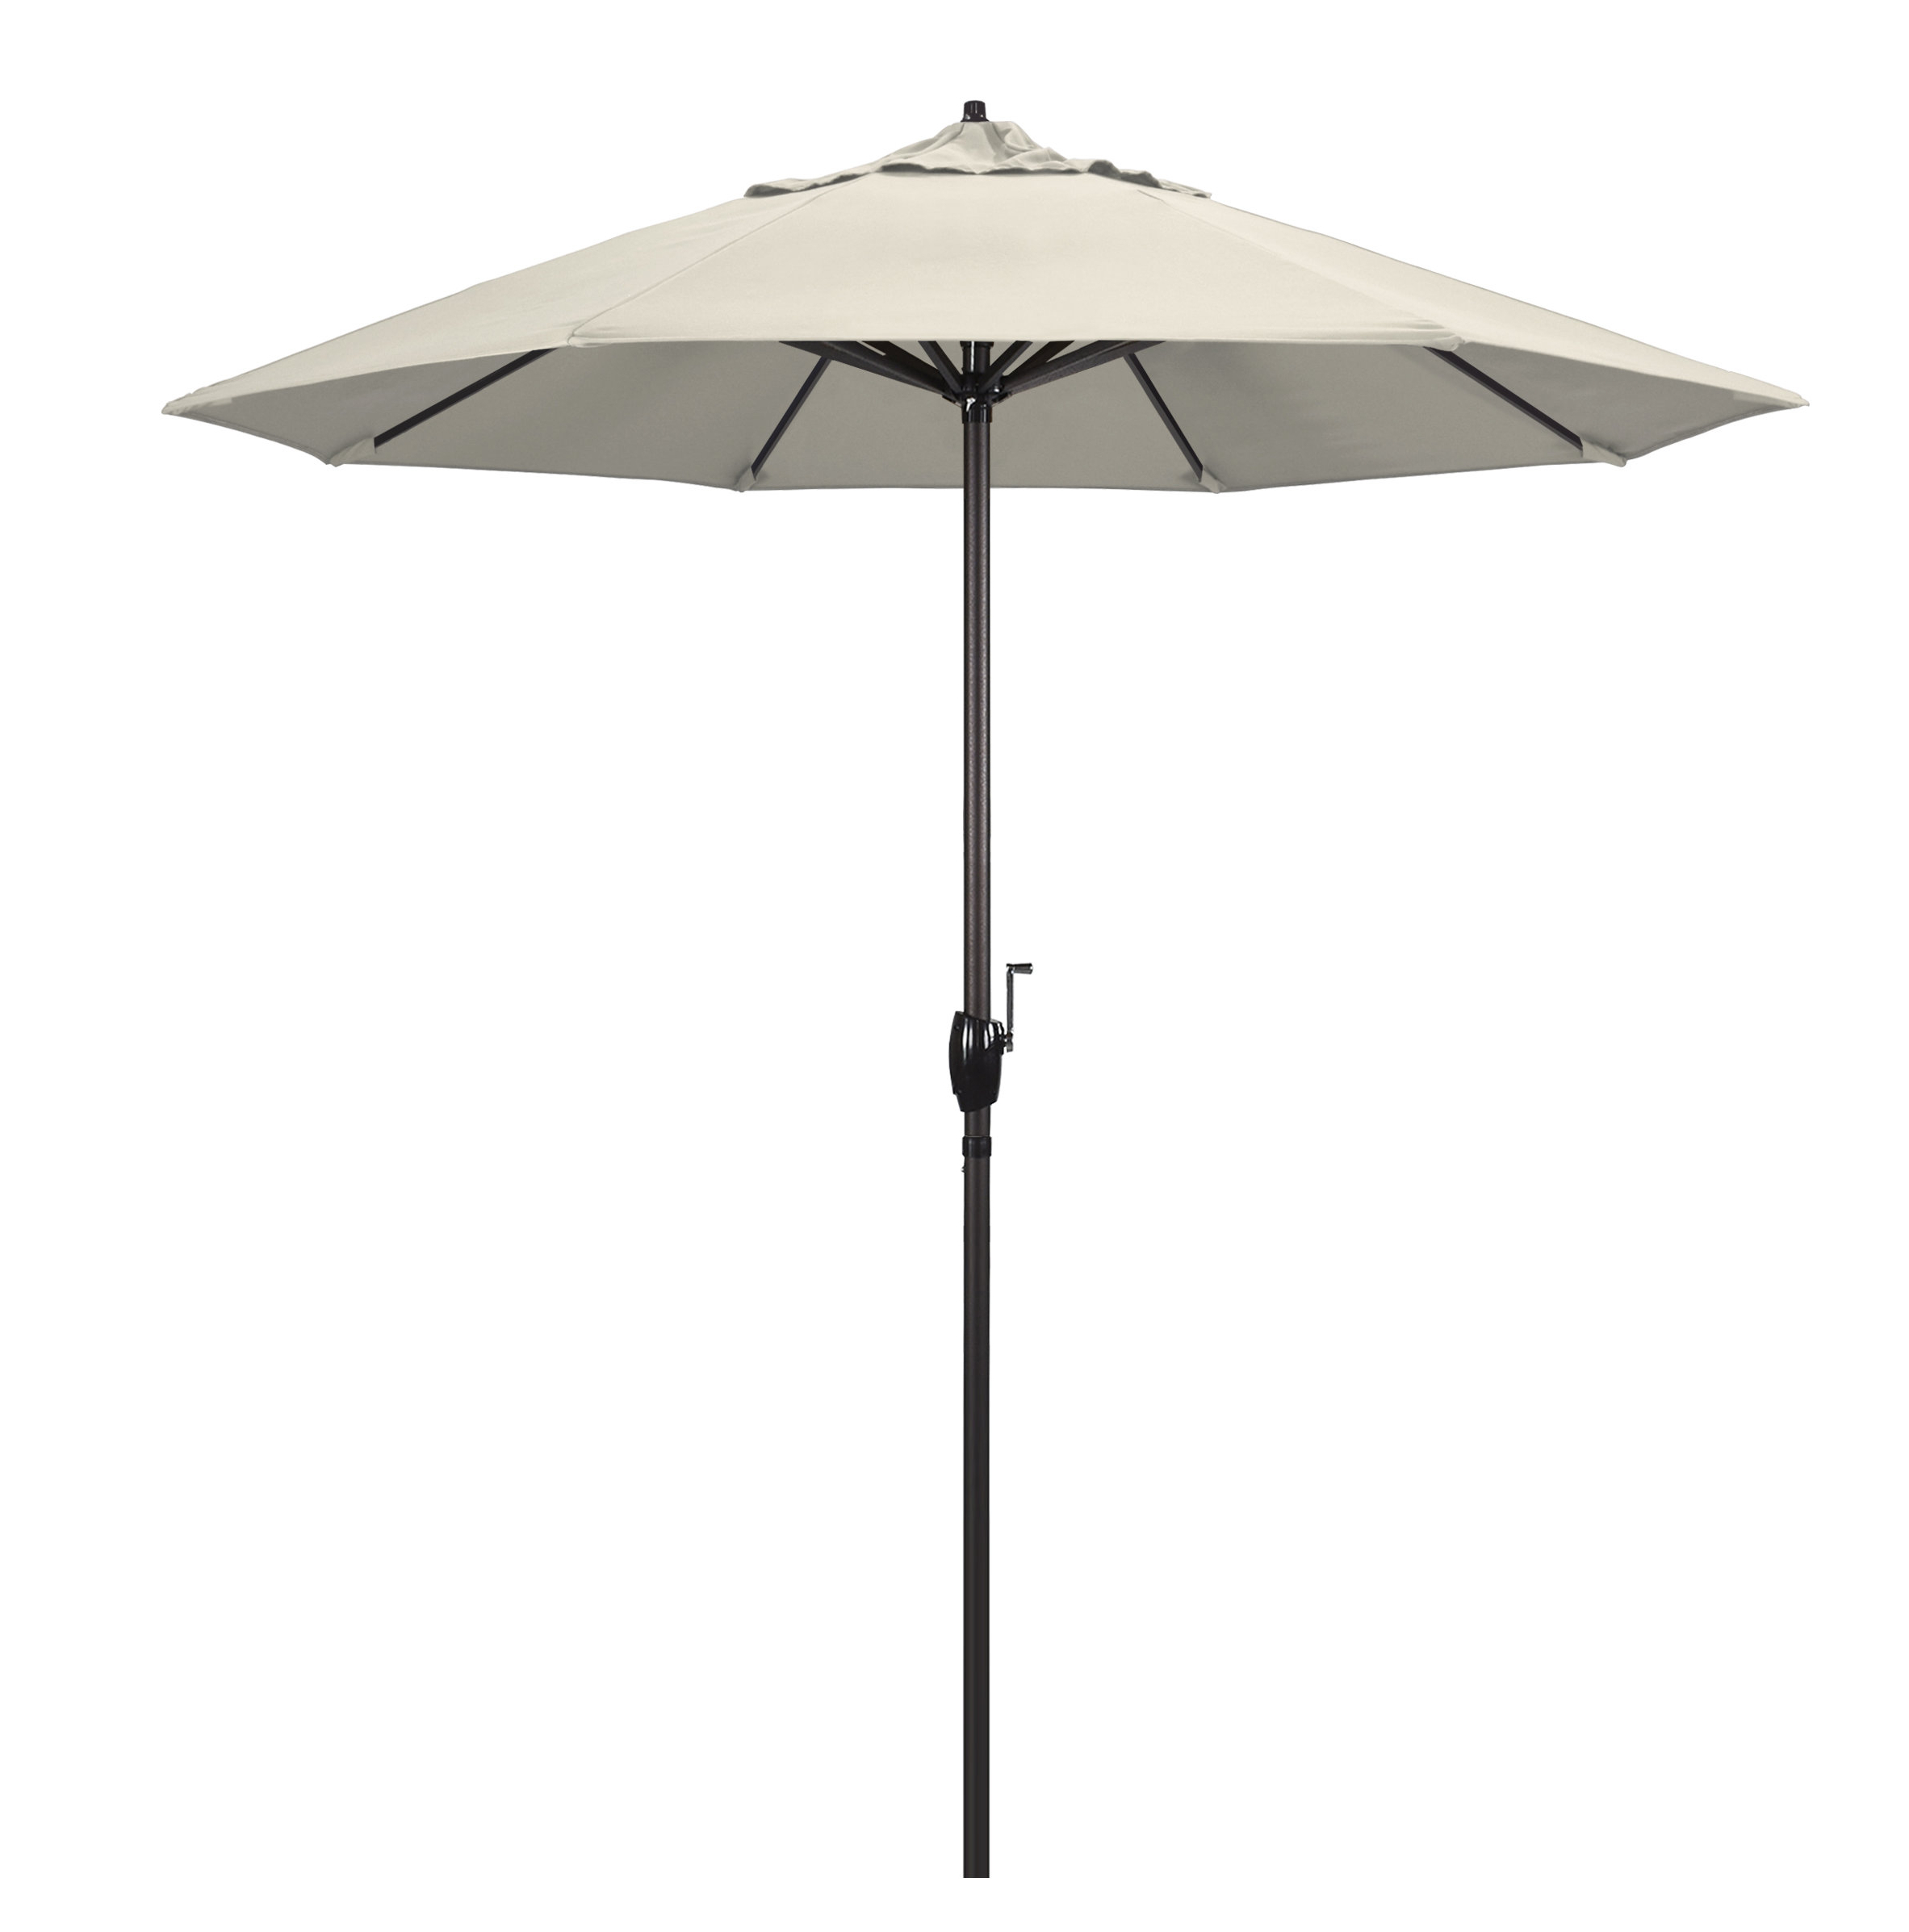 Canora Grey Nunn 8' Market Sunbrella Umbrella Within Most Popular Wiebe Auto Tilt Square Market Sunbrella Umbrellas (View 4 of 20)